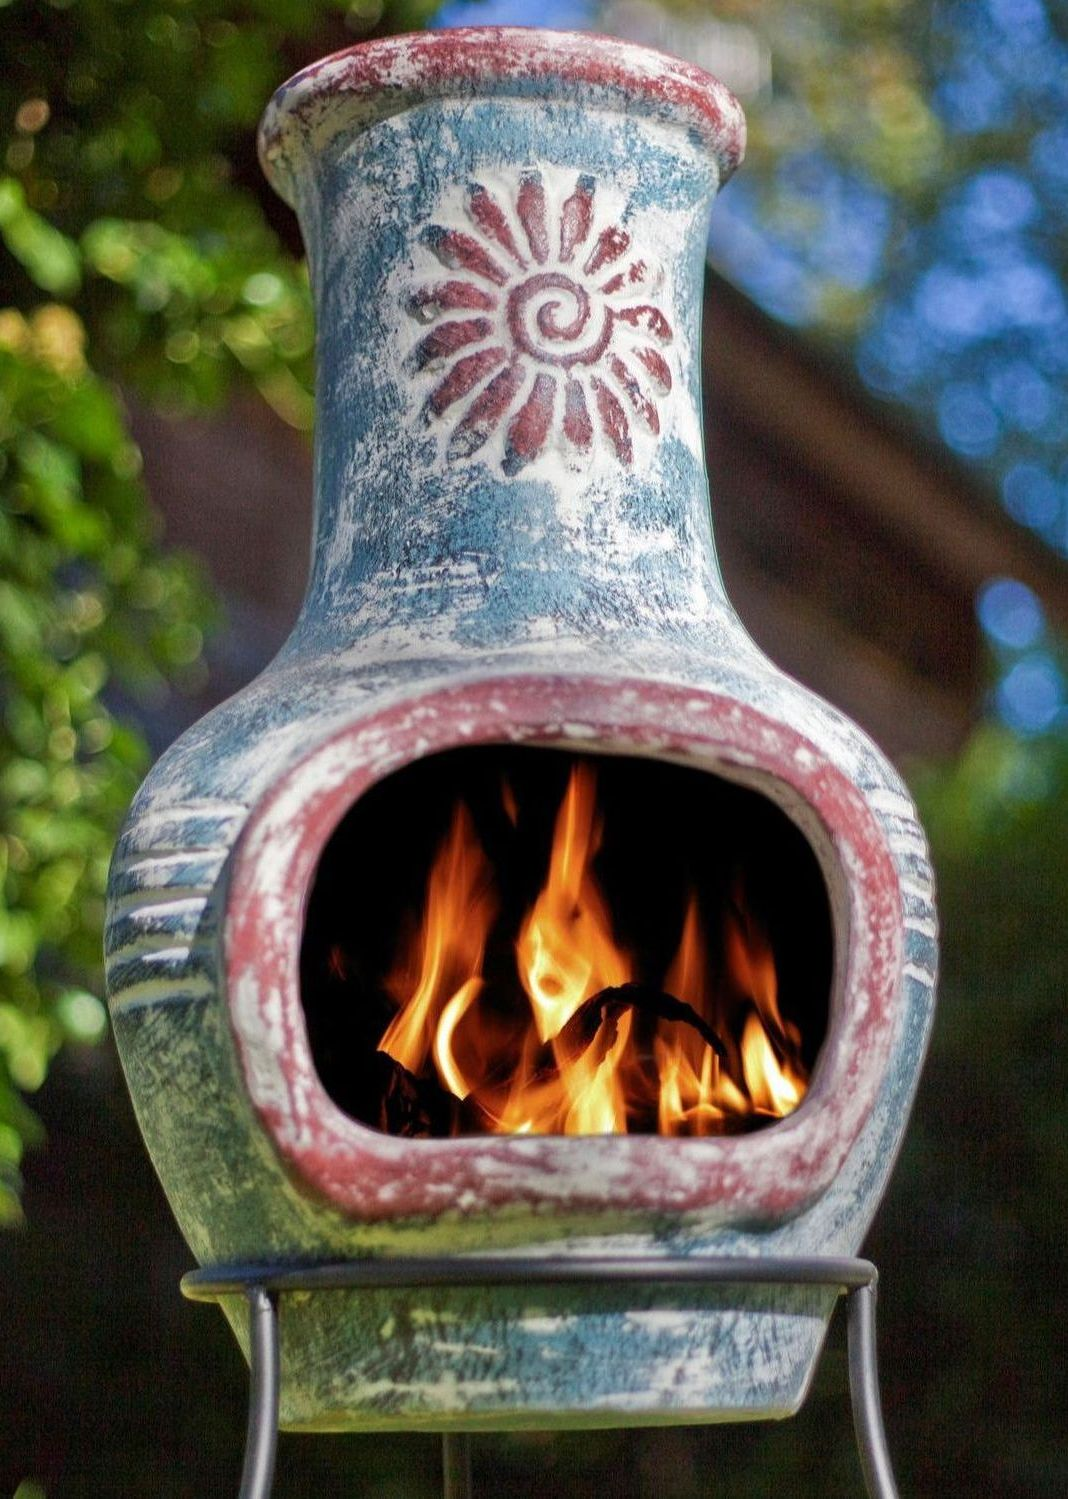 La Hacienda Clay Chimenea Chiminea Sea Blue & Red with Swirl Design